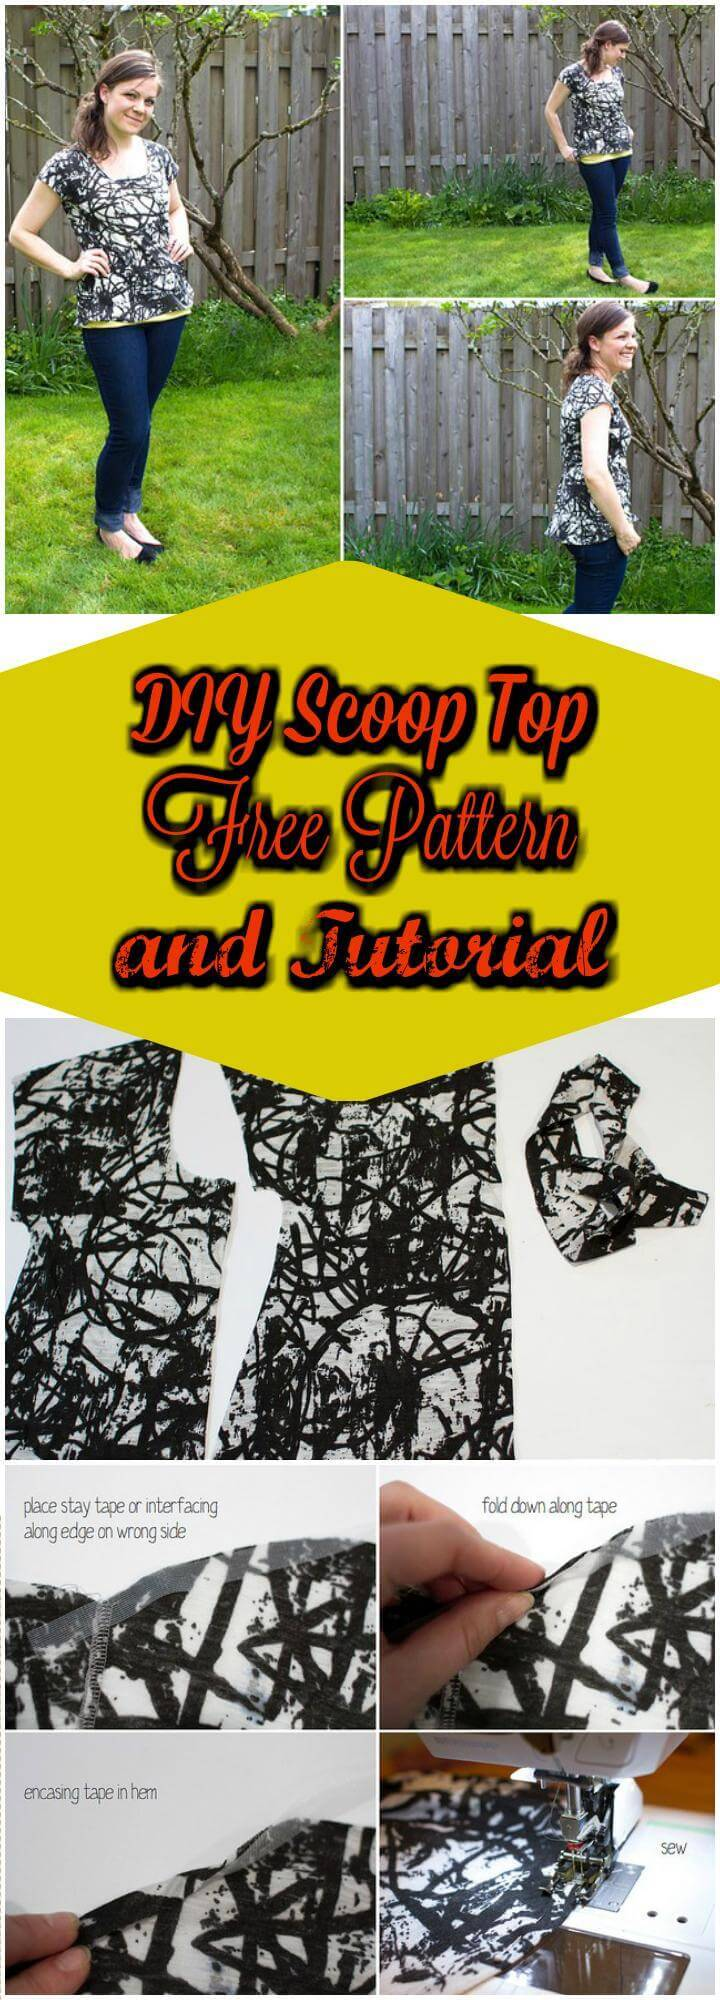 easy scoop top free pattern